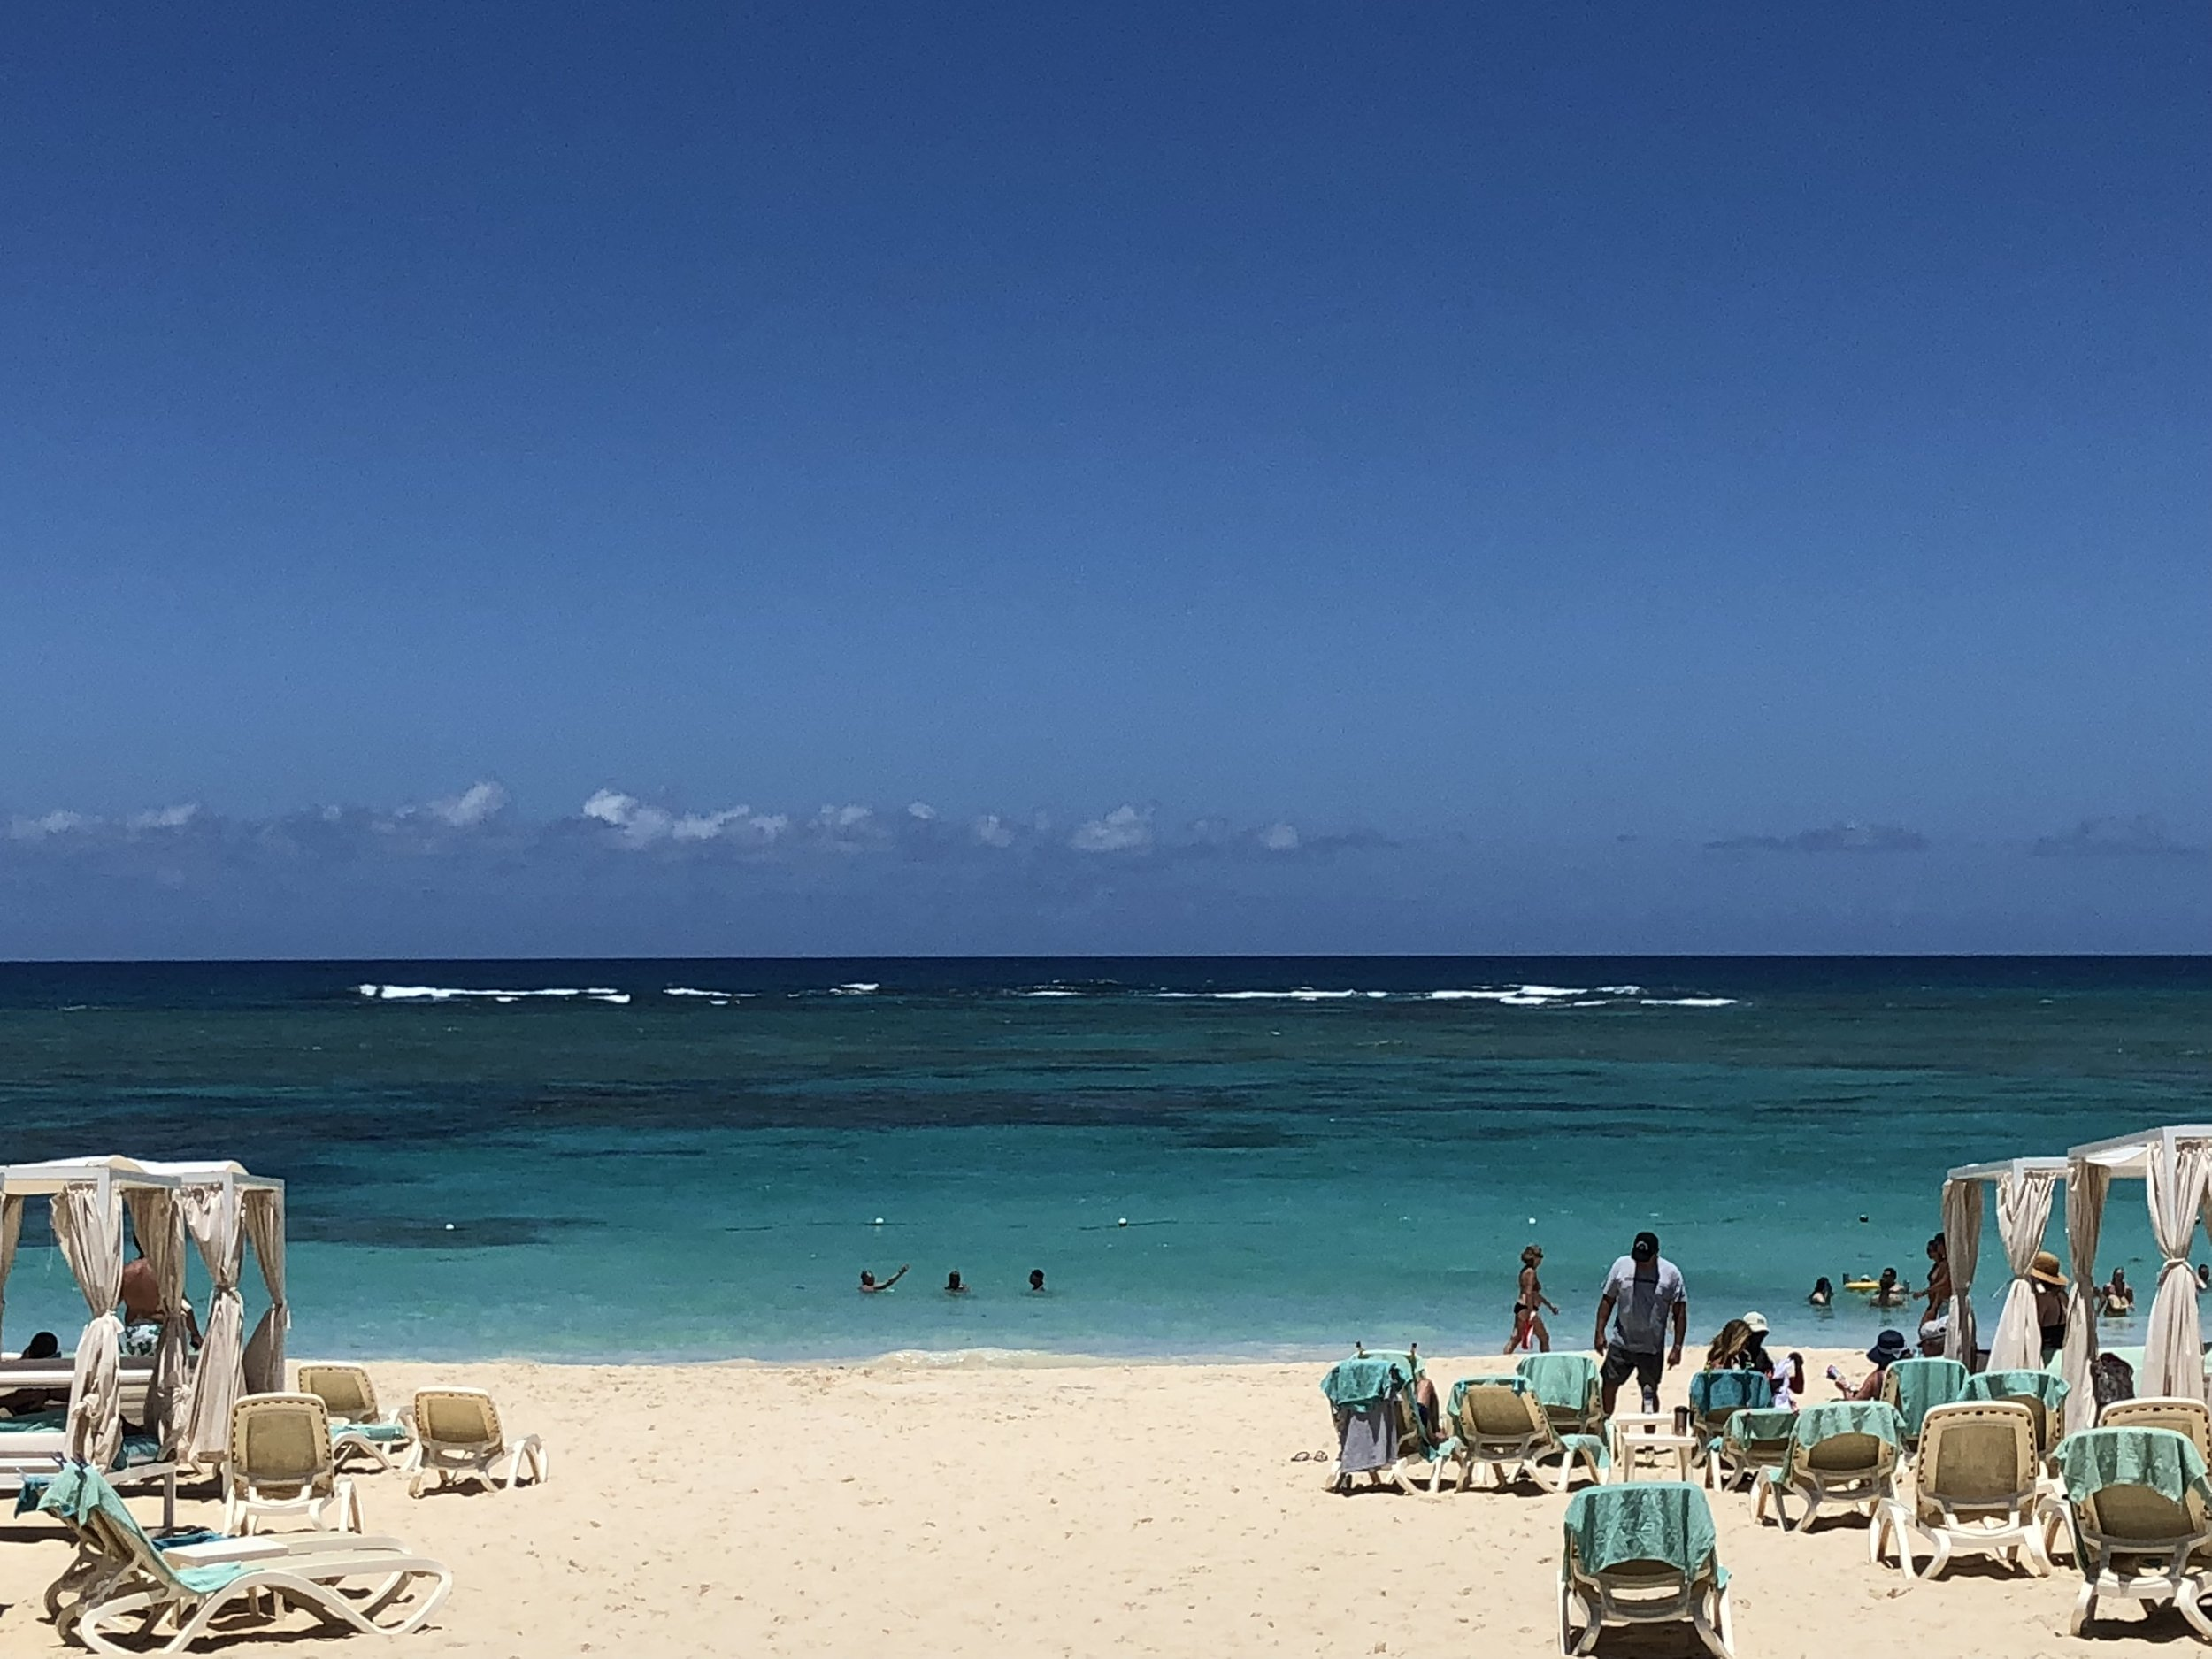 Stunning white sand beaches with blue ocean waves.